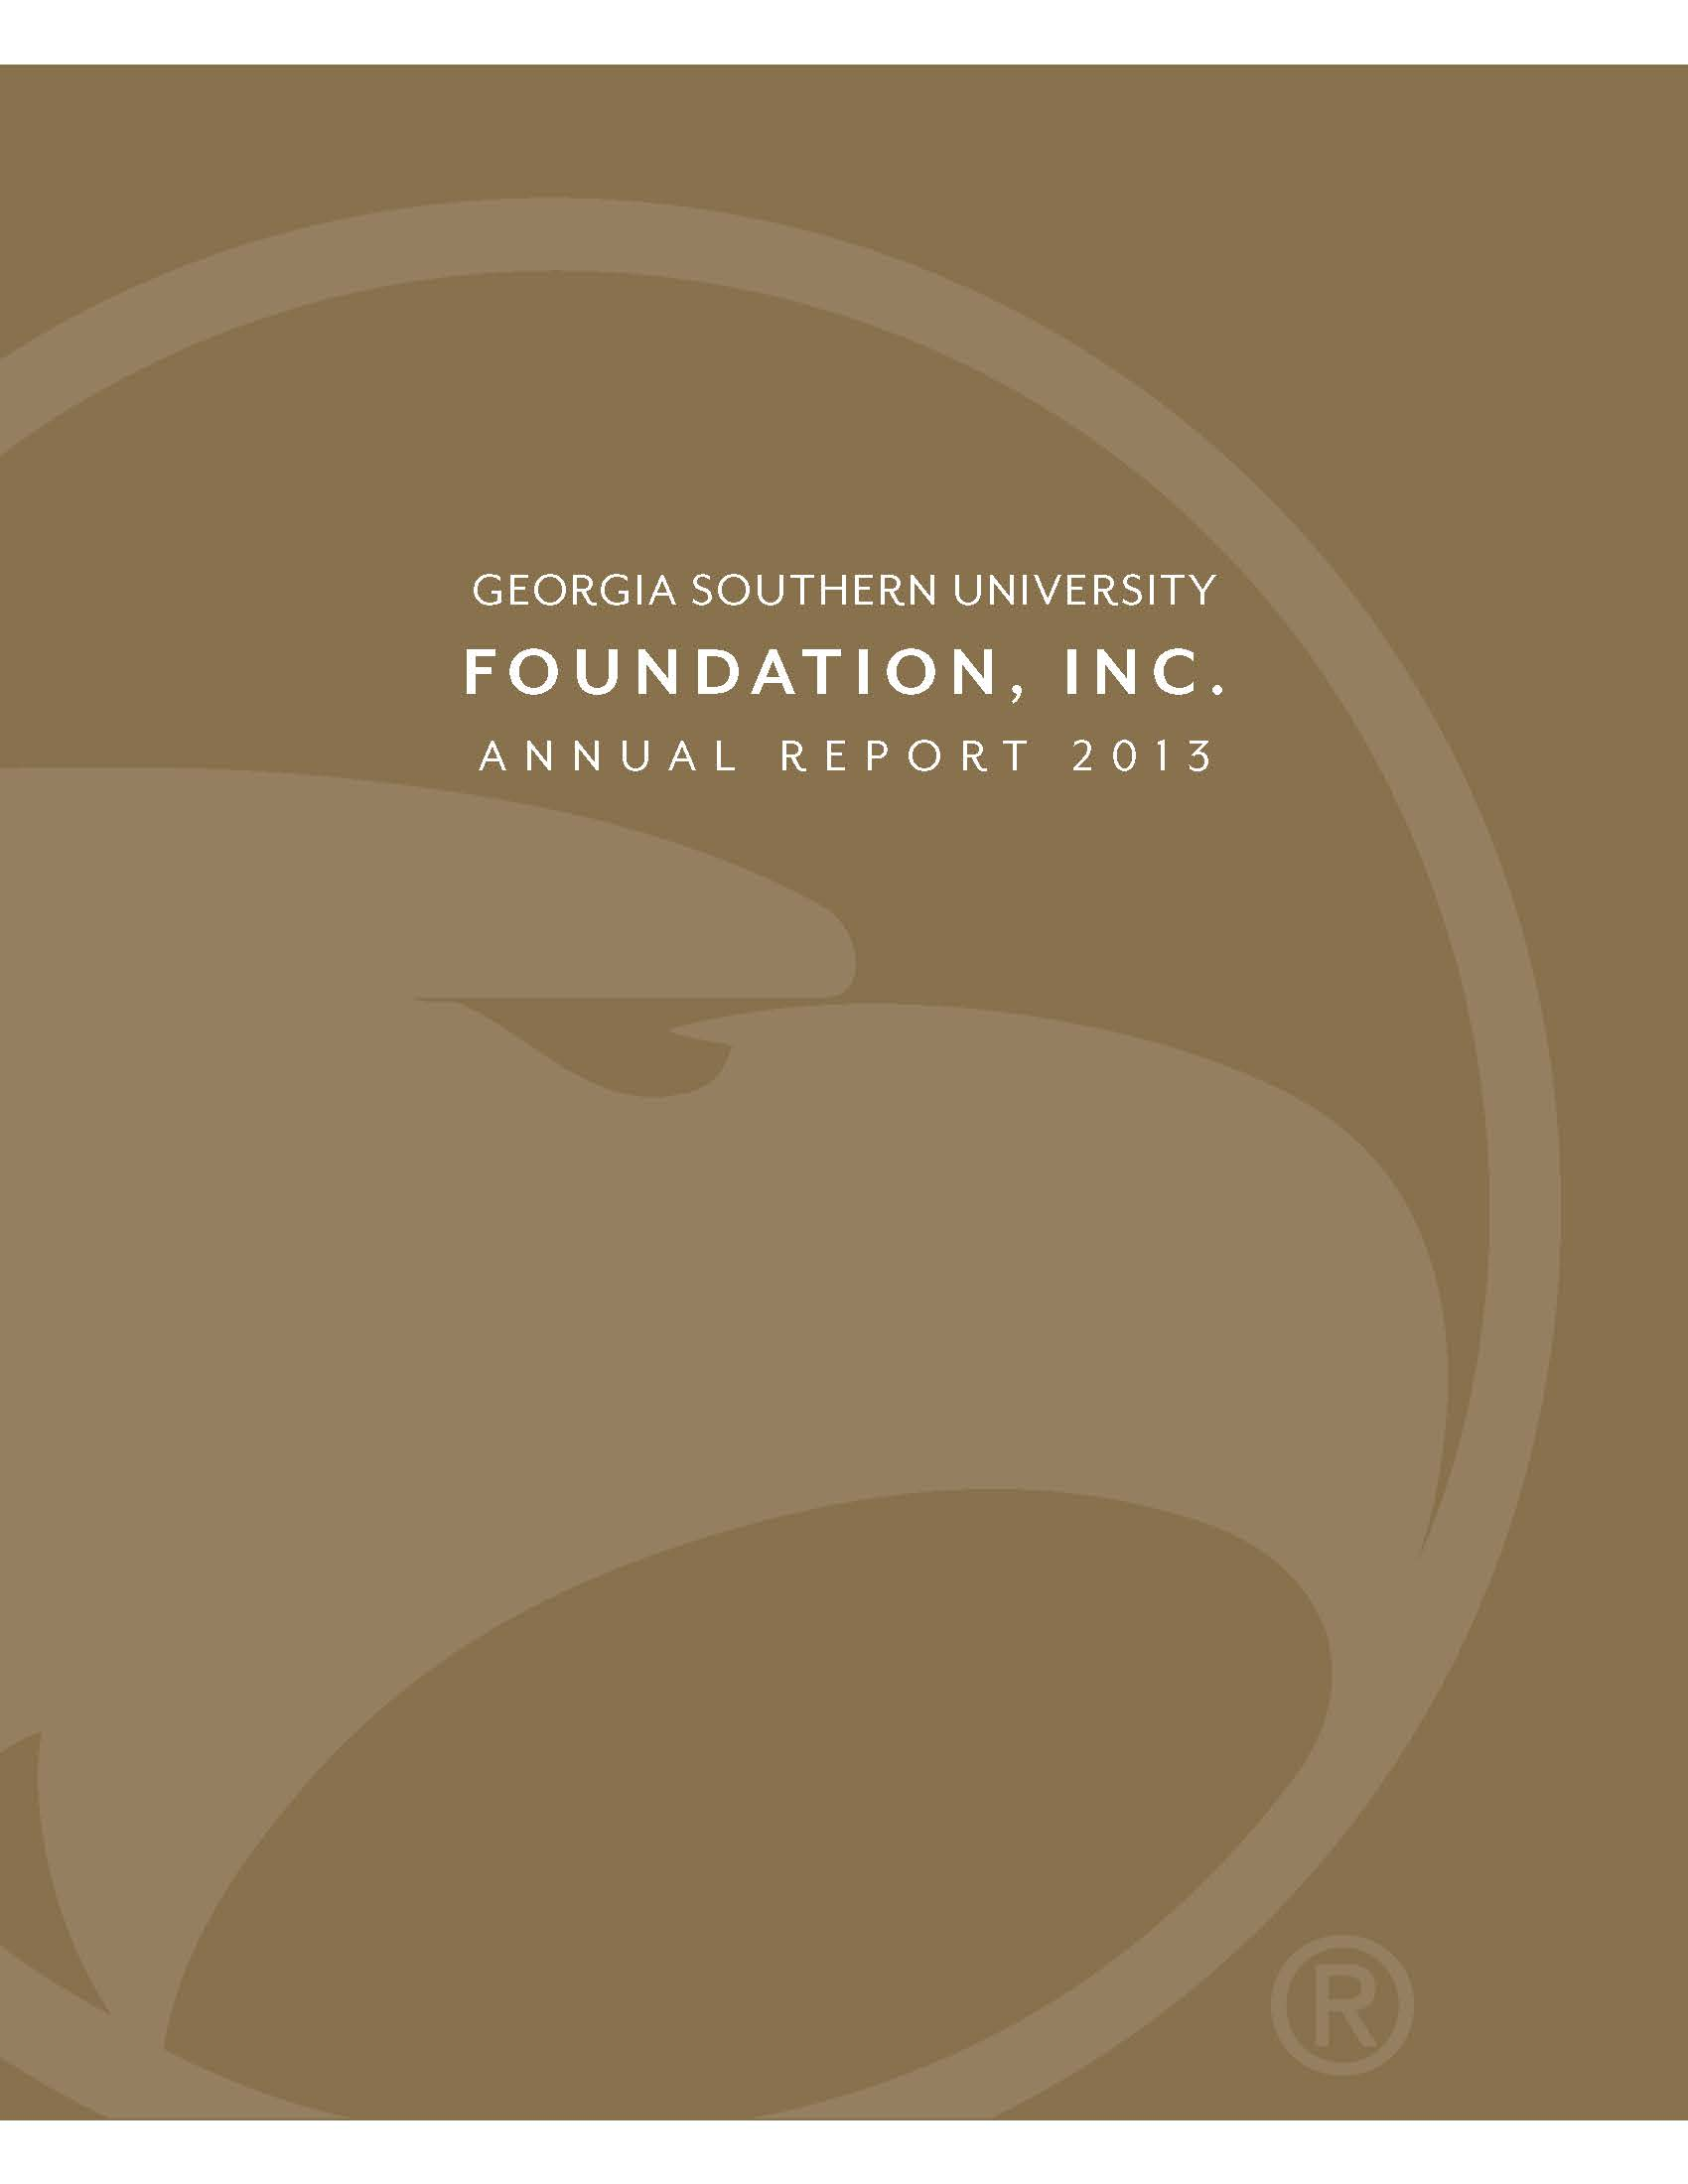 2013 Annual Report with image of Georgia Southern academic logo